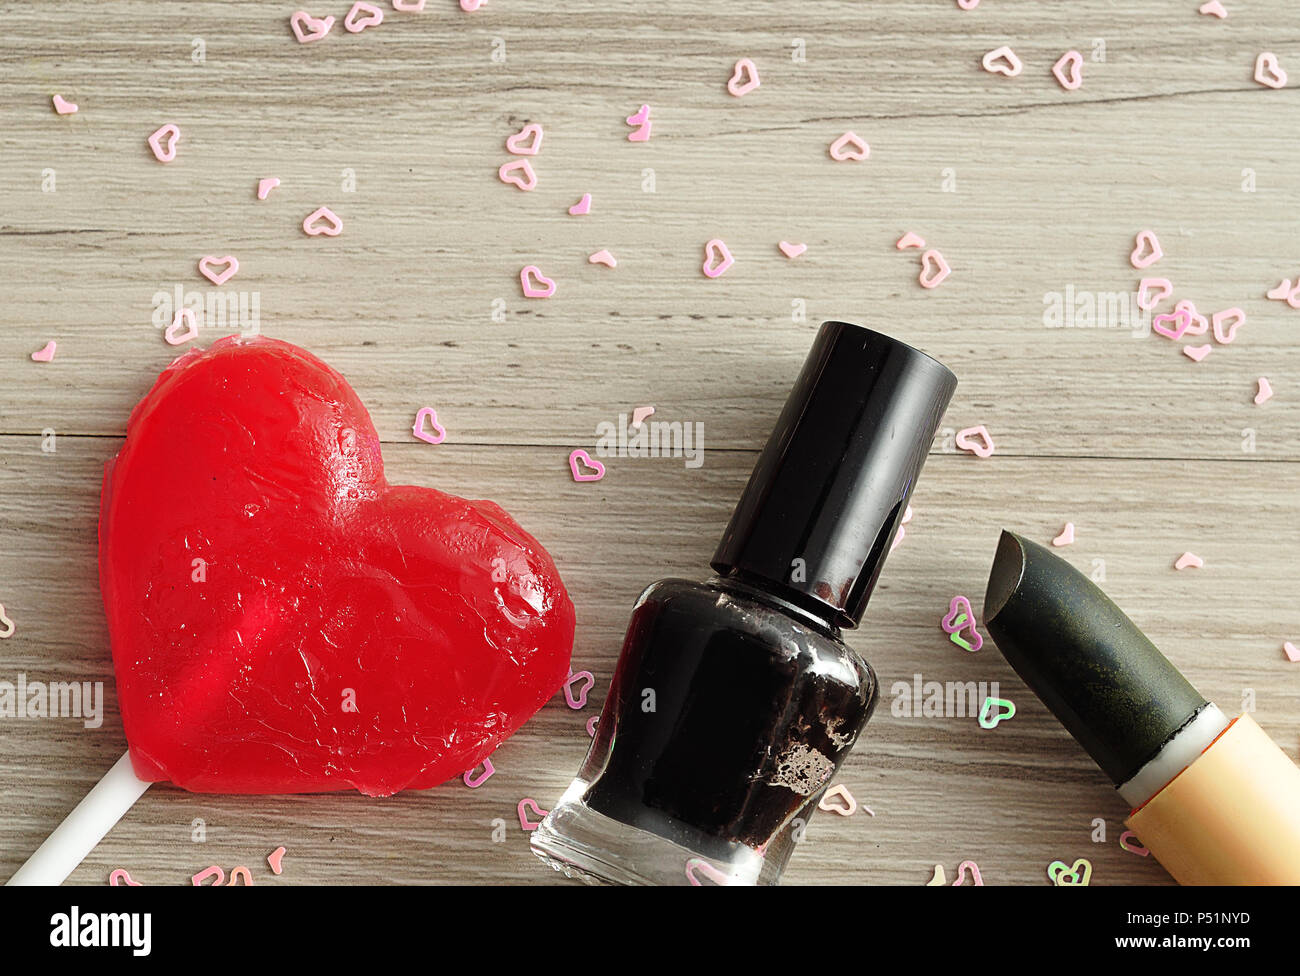 Black nail polish and lipstick displayed with a red heart shape ...